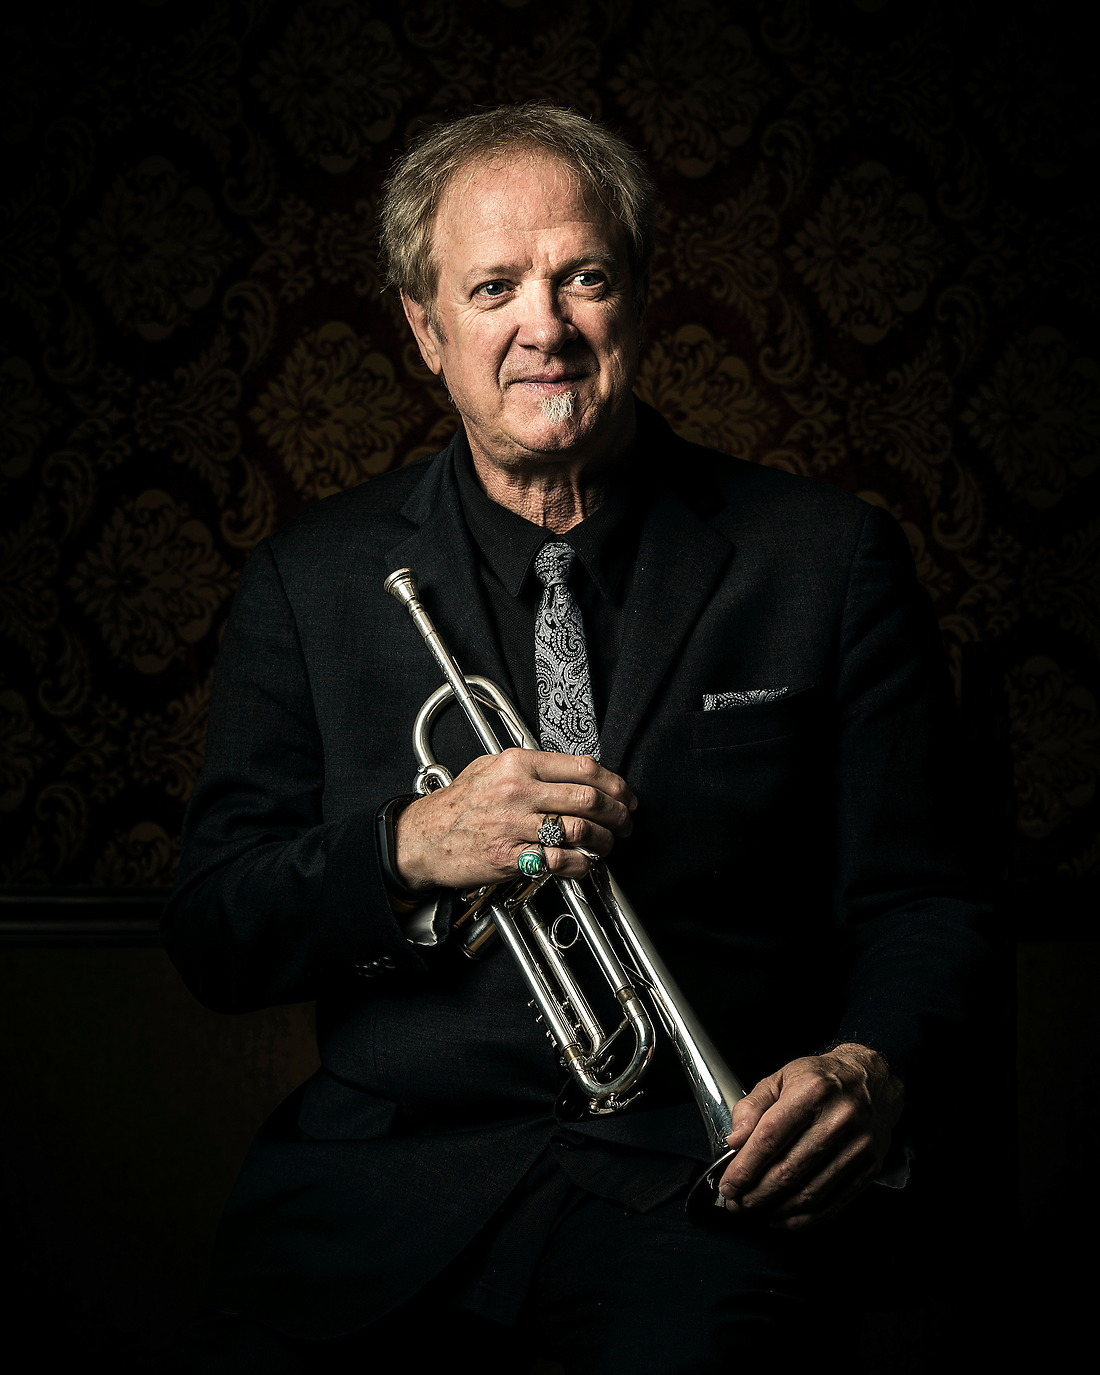 Lee Loughnane Founder and member of the band Chicago. — © Jeremy Lock/